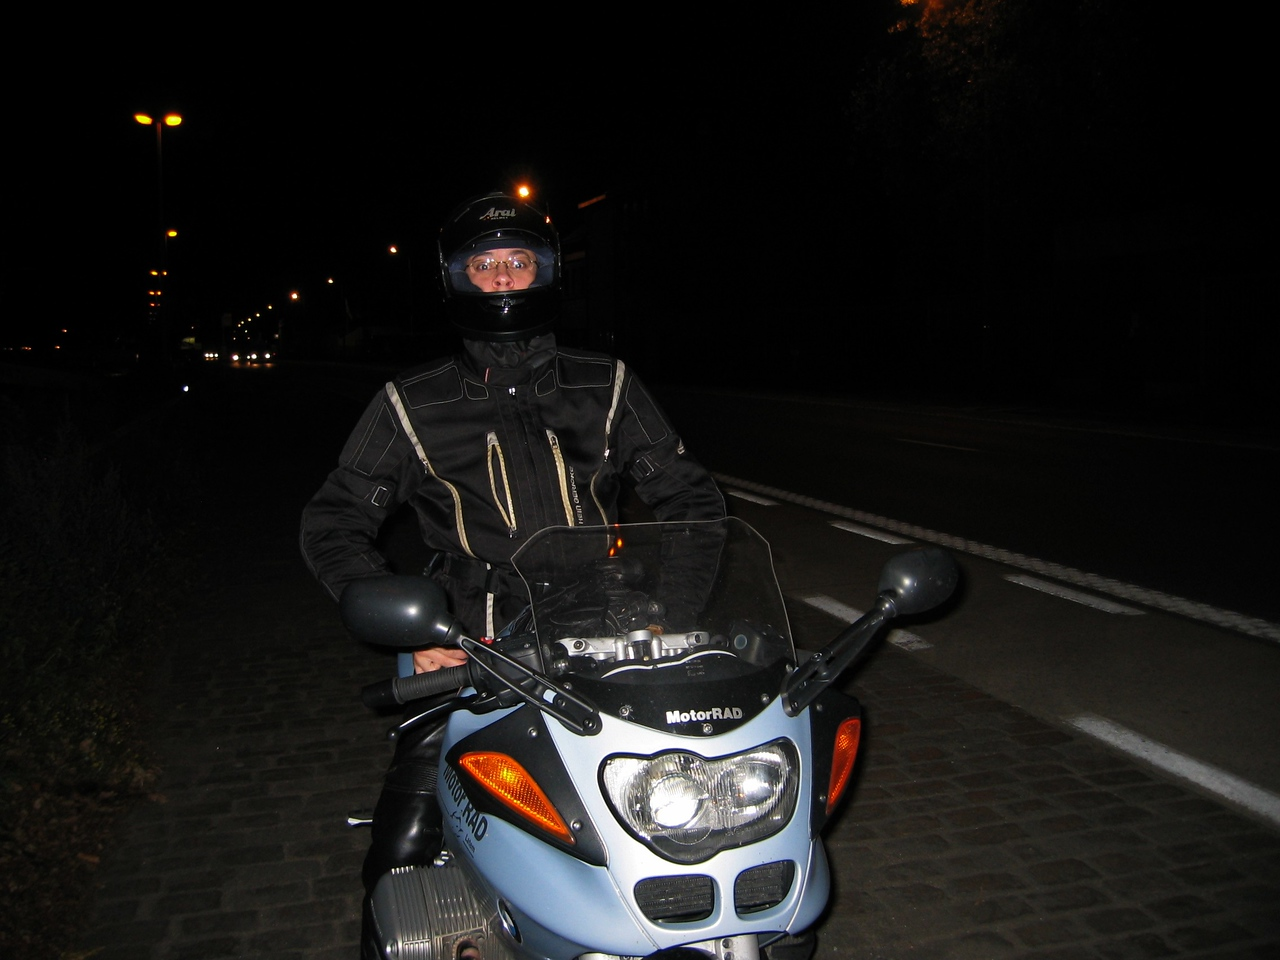 The night-rider is here :-)...